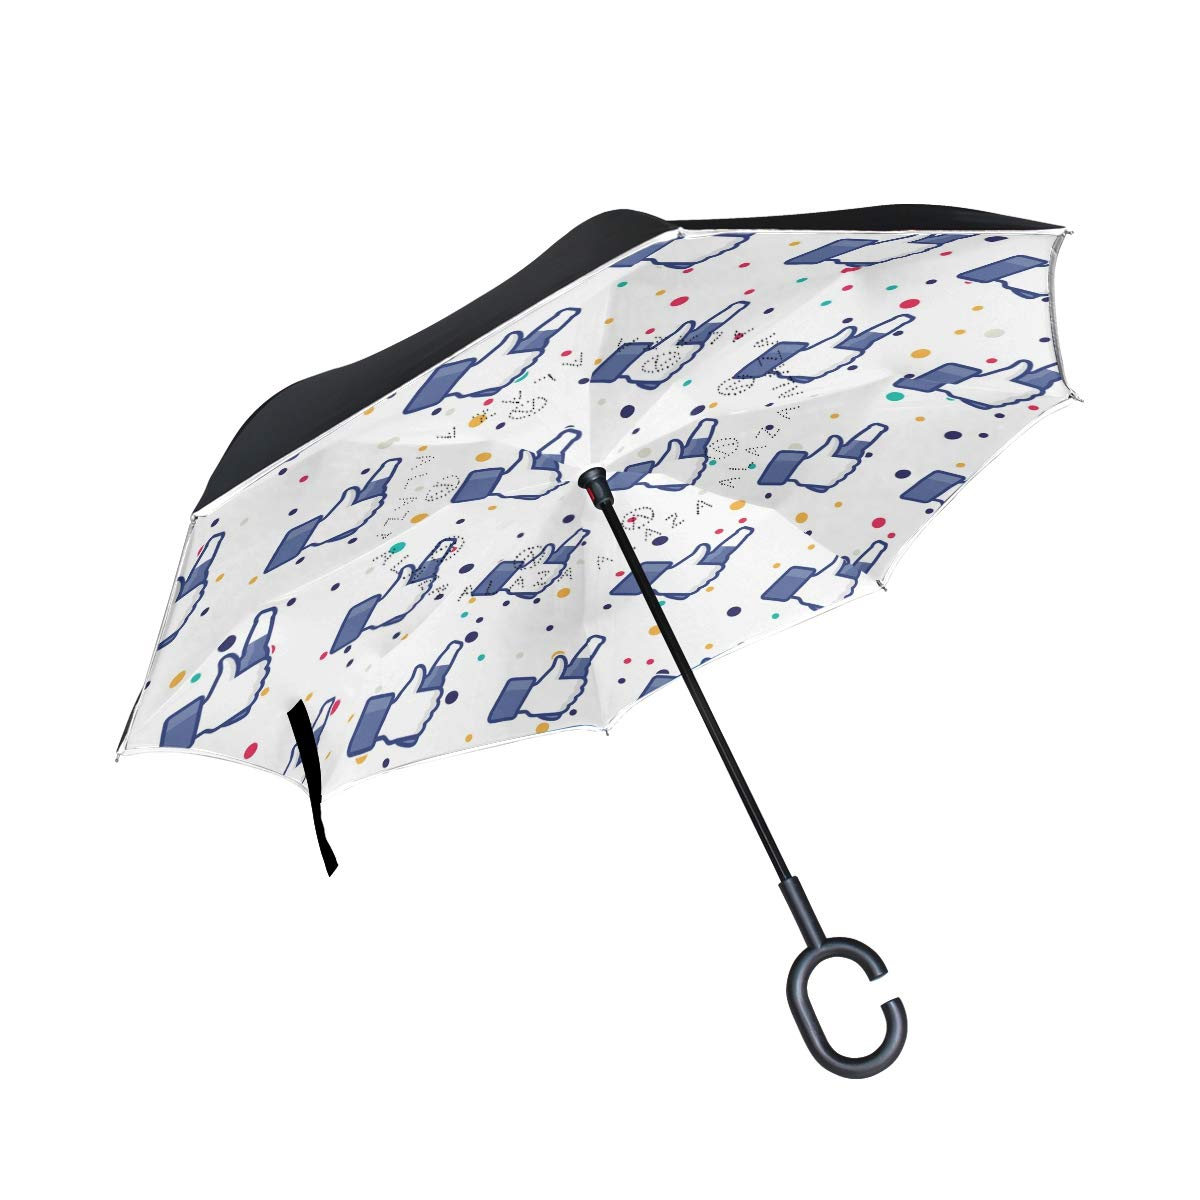 DKRetro Double Layer Fun Beer Inverted Umbrellas- Reverse Folding Umbrella for Car, C-Shaped Handle Umbrella with Light Reflection Strip by DKRetro (Image #1)